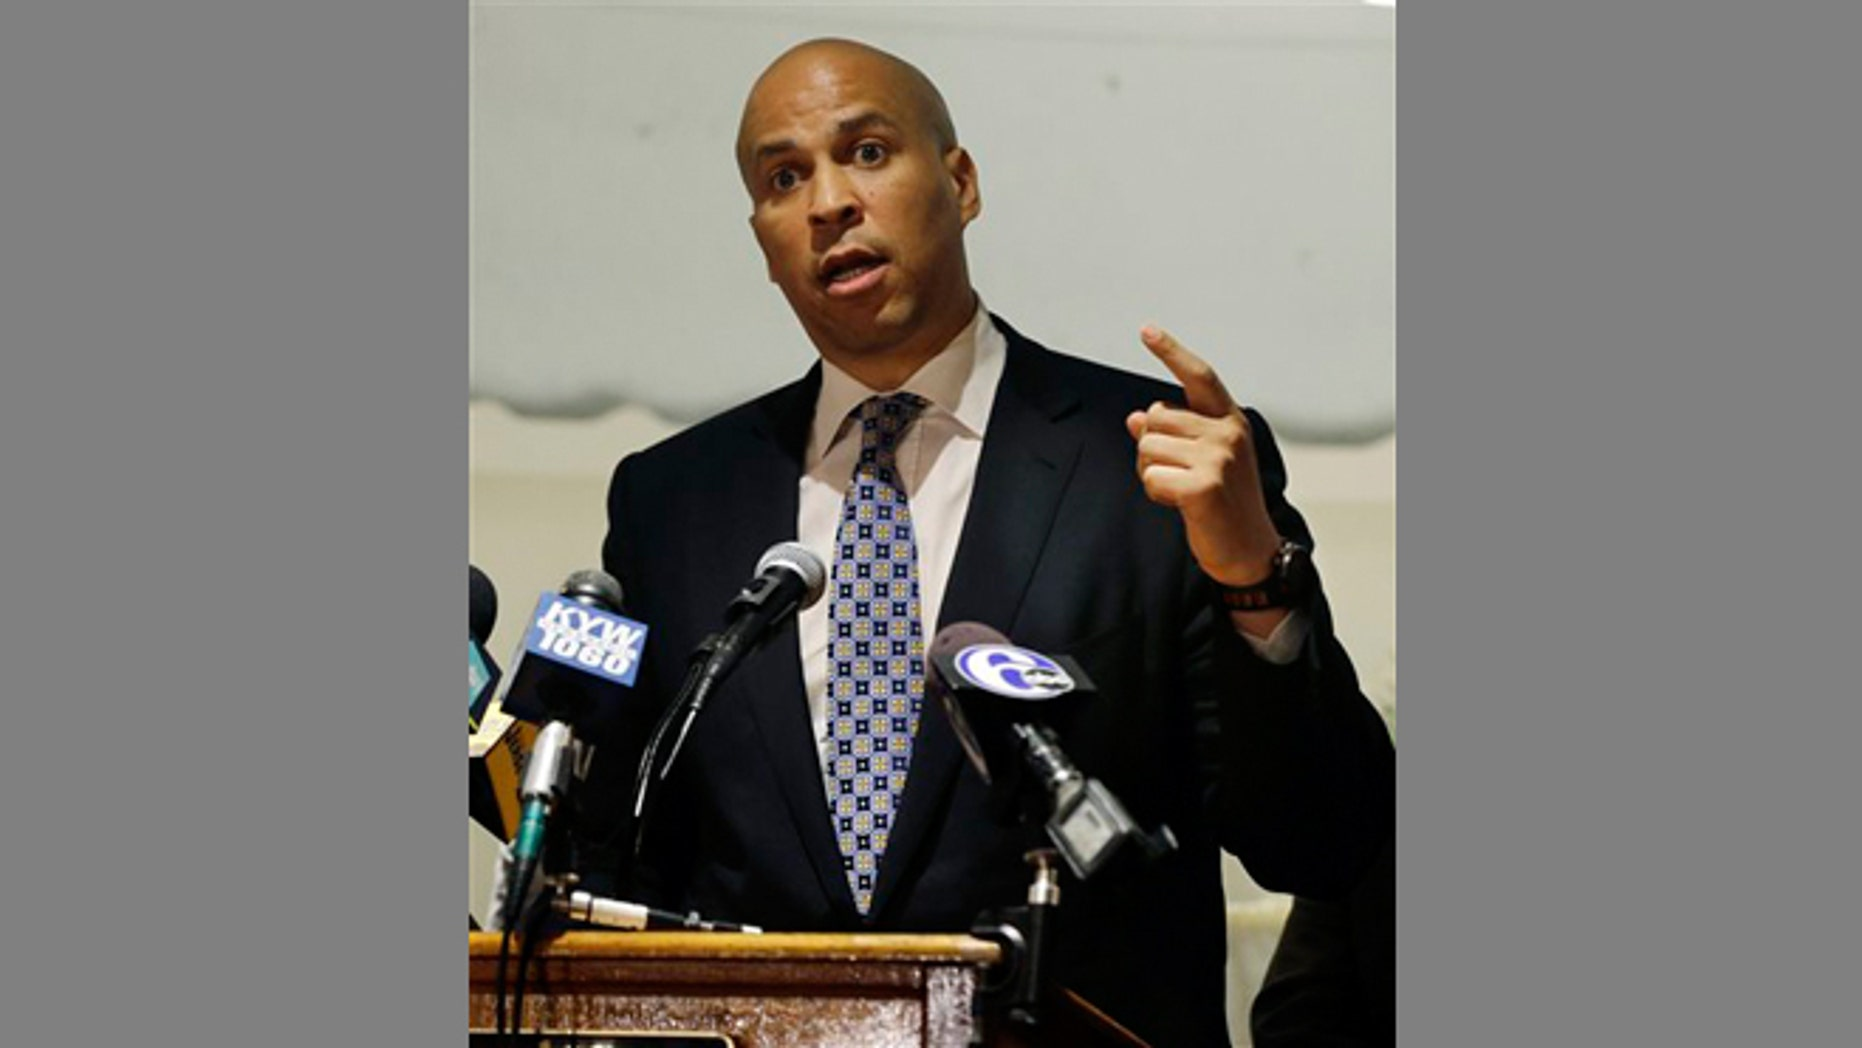 FILE -- June 19, 2013: Senate candidate, Newark Mayor Cory Booker addresses a gathering of supporters during an event in Deptford Township, N.J.